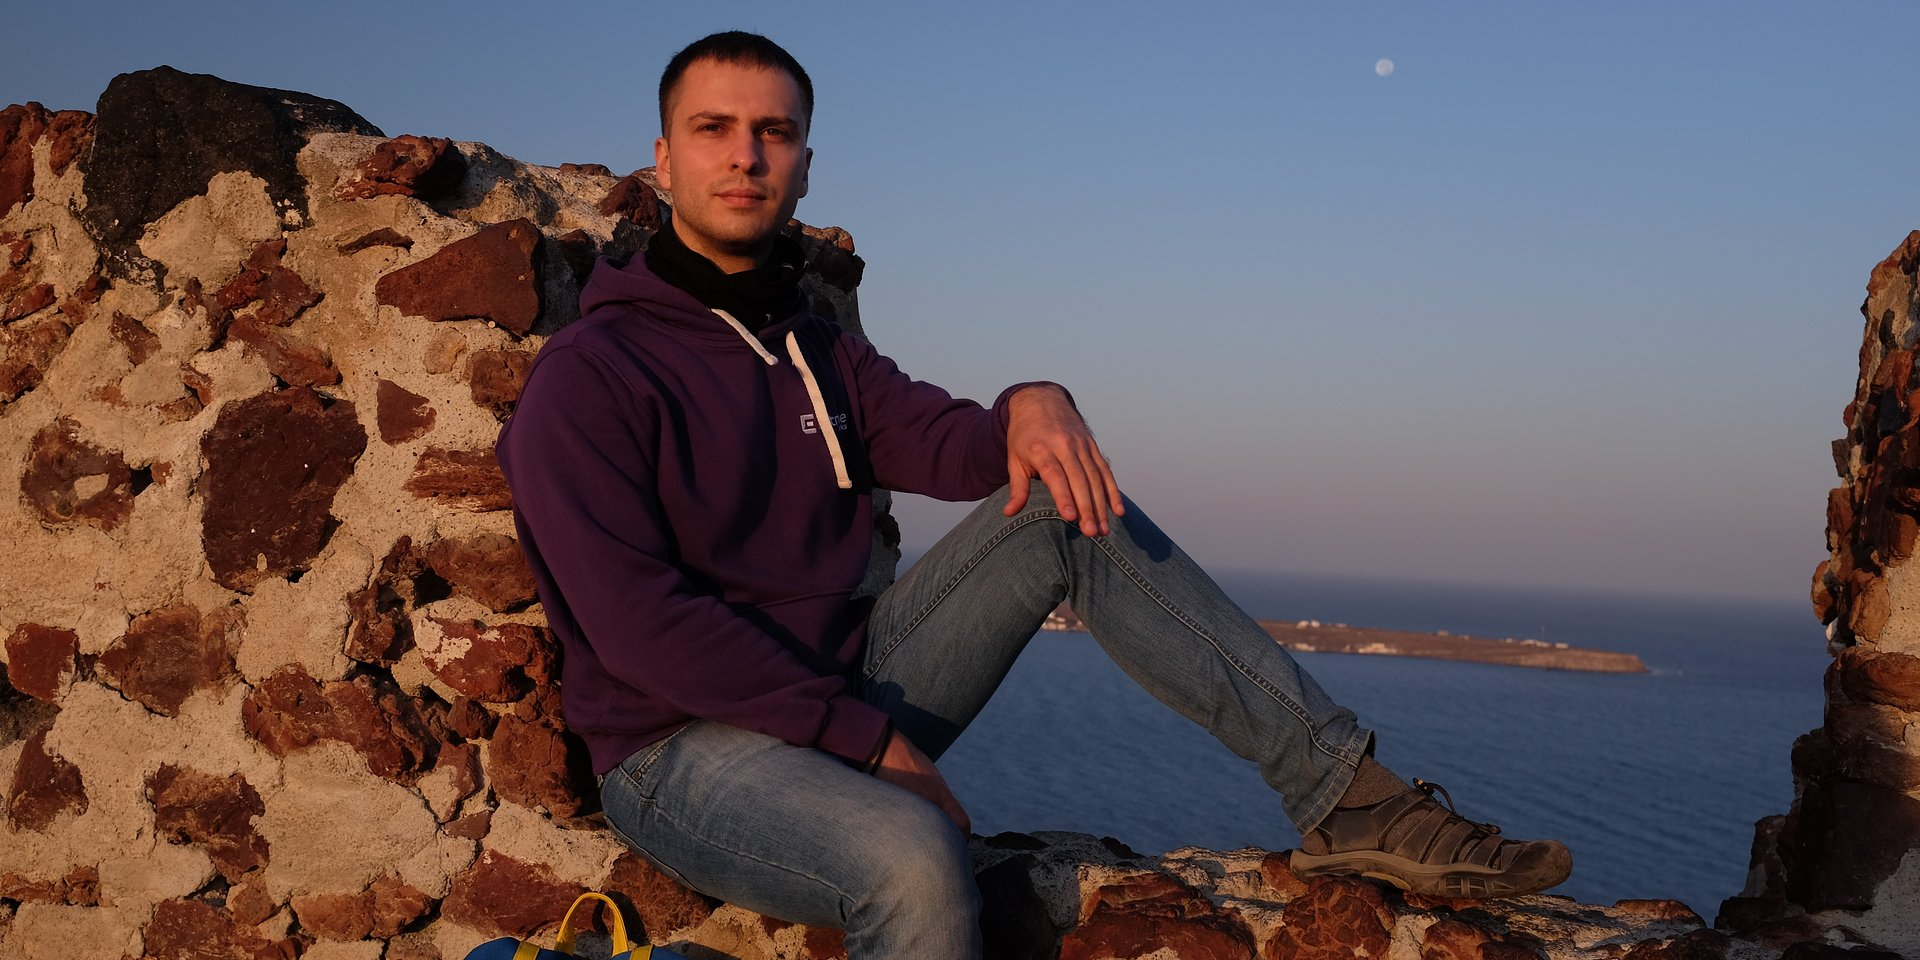 Keep calm and talk about technologies! An interview with Evgeniy Kudryashov